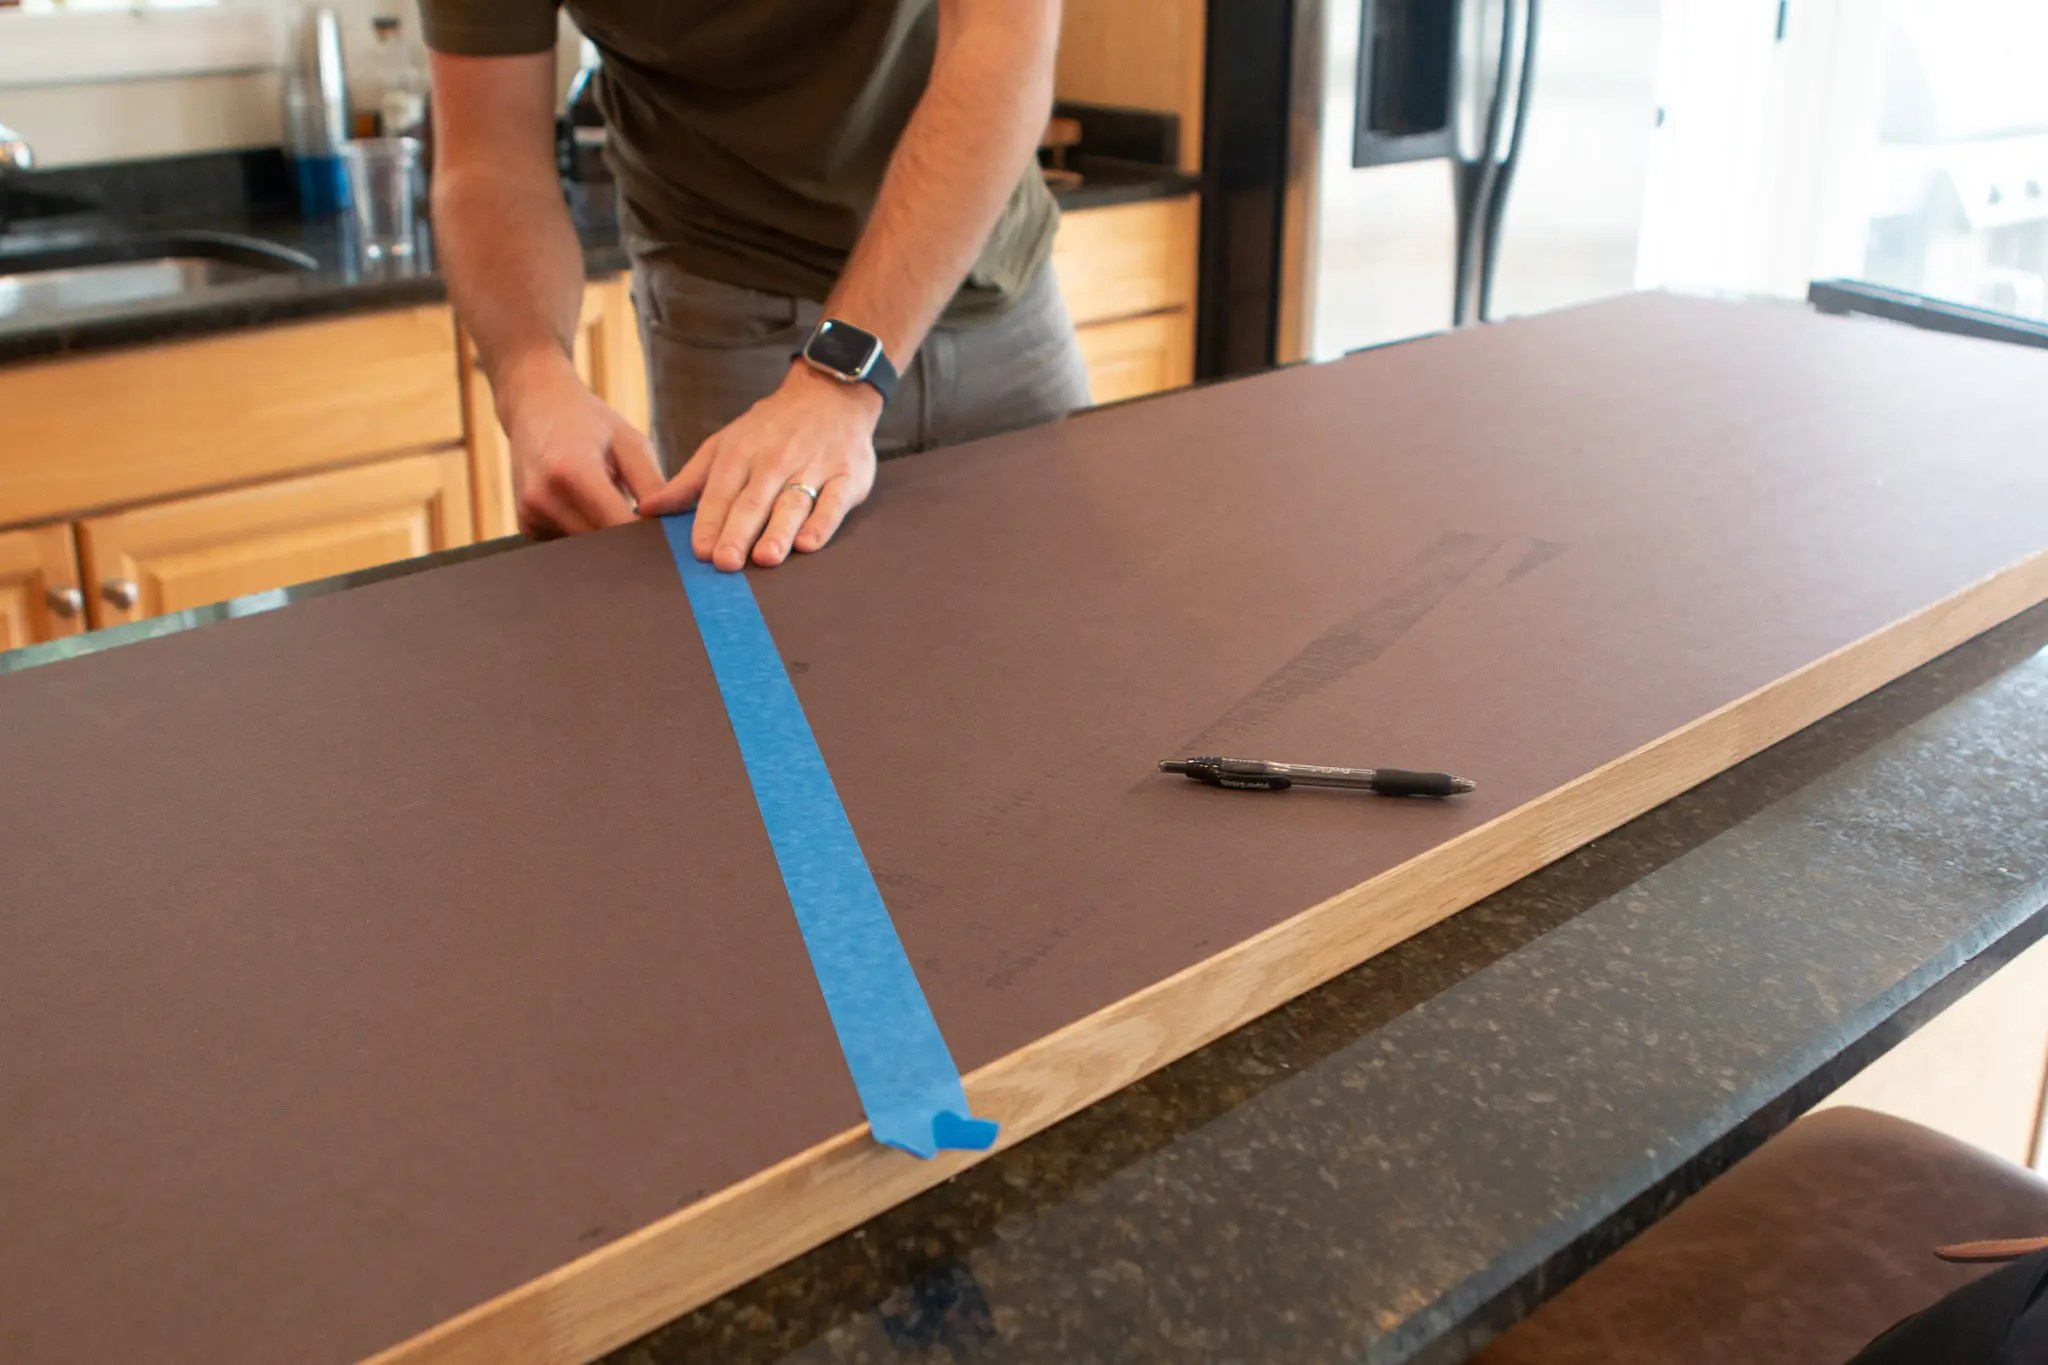 Tips To Install An Ikea Butcher Block Countertop The Diy Playbook